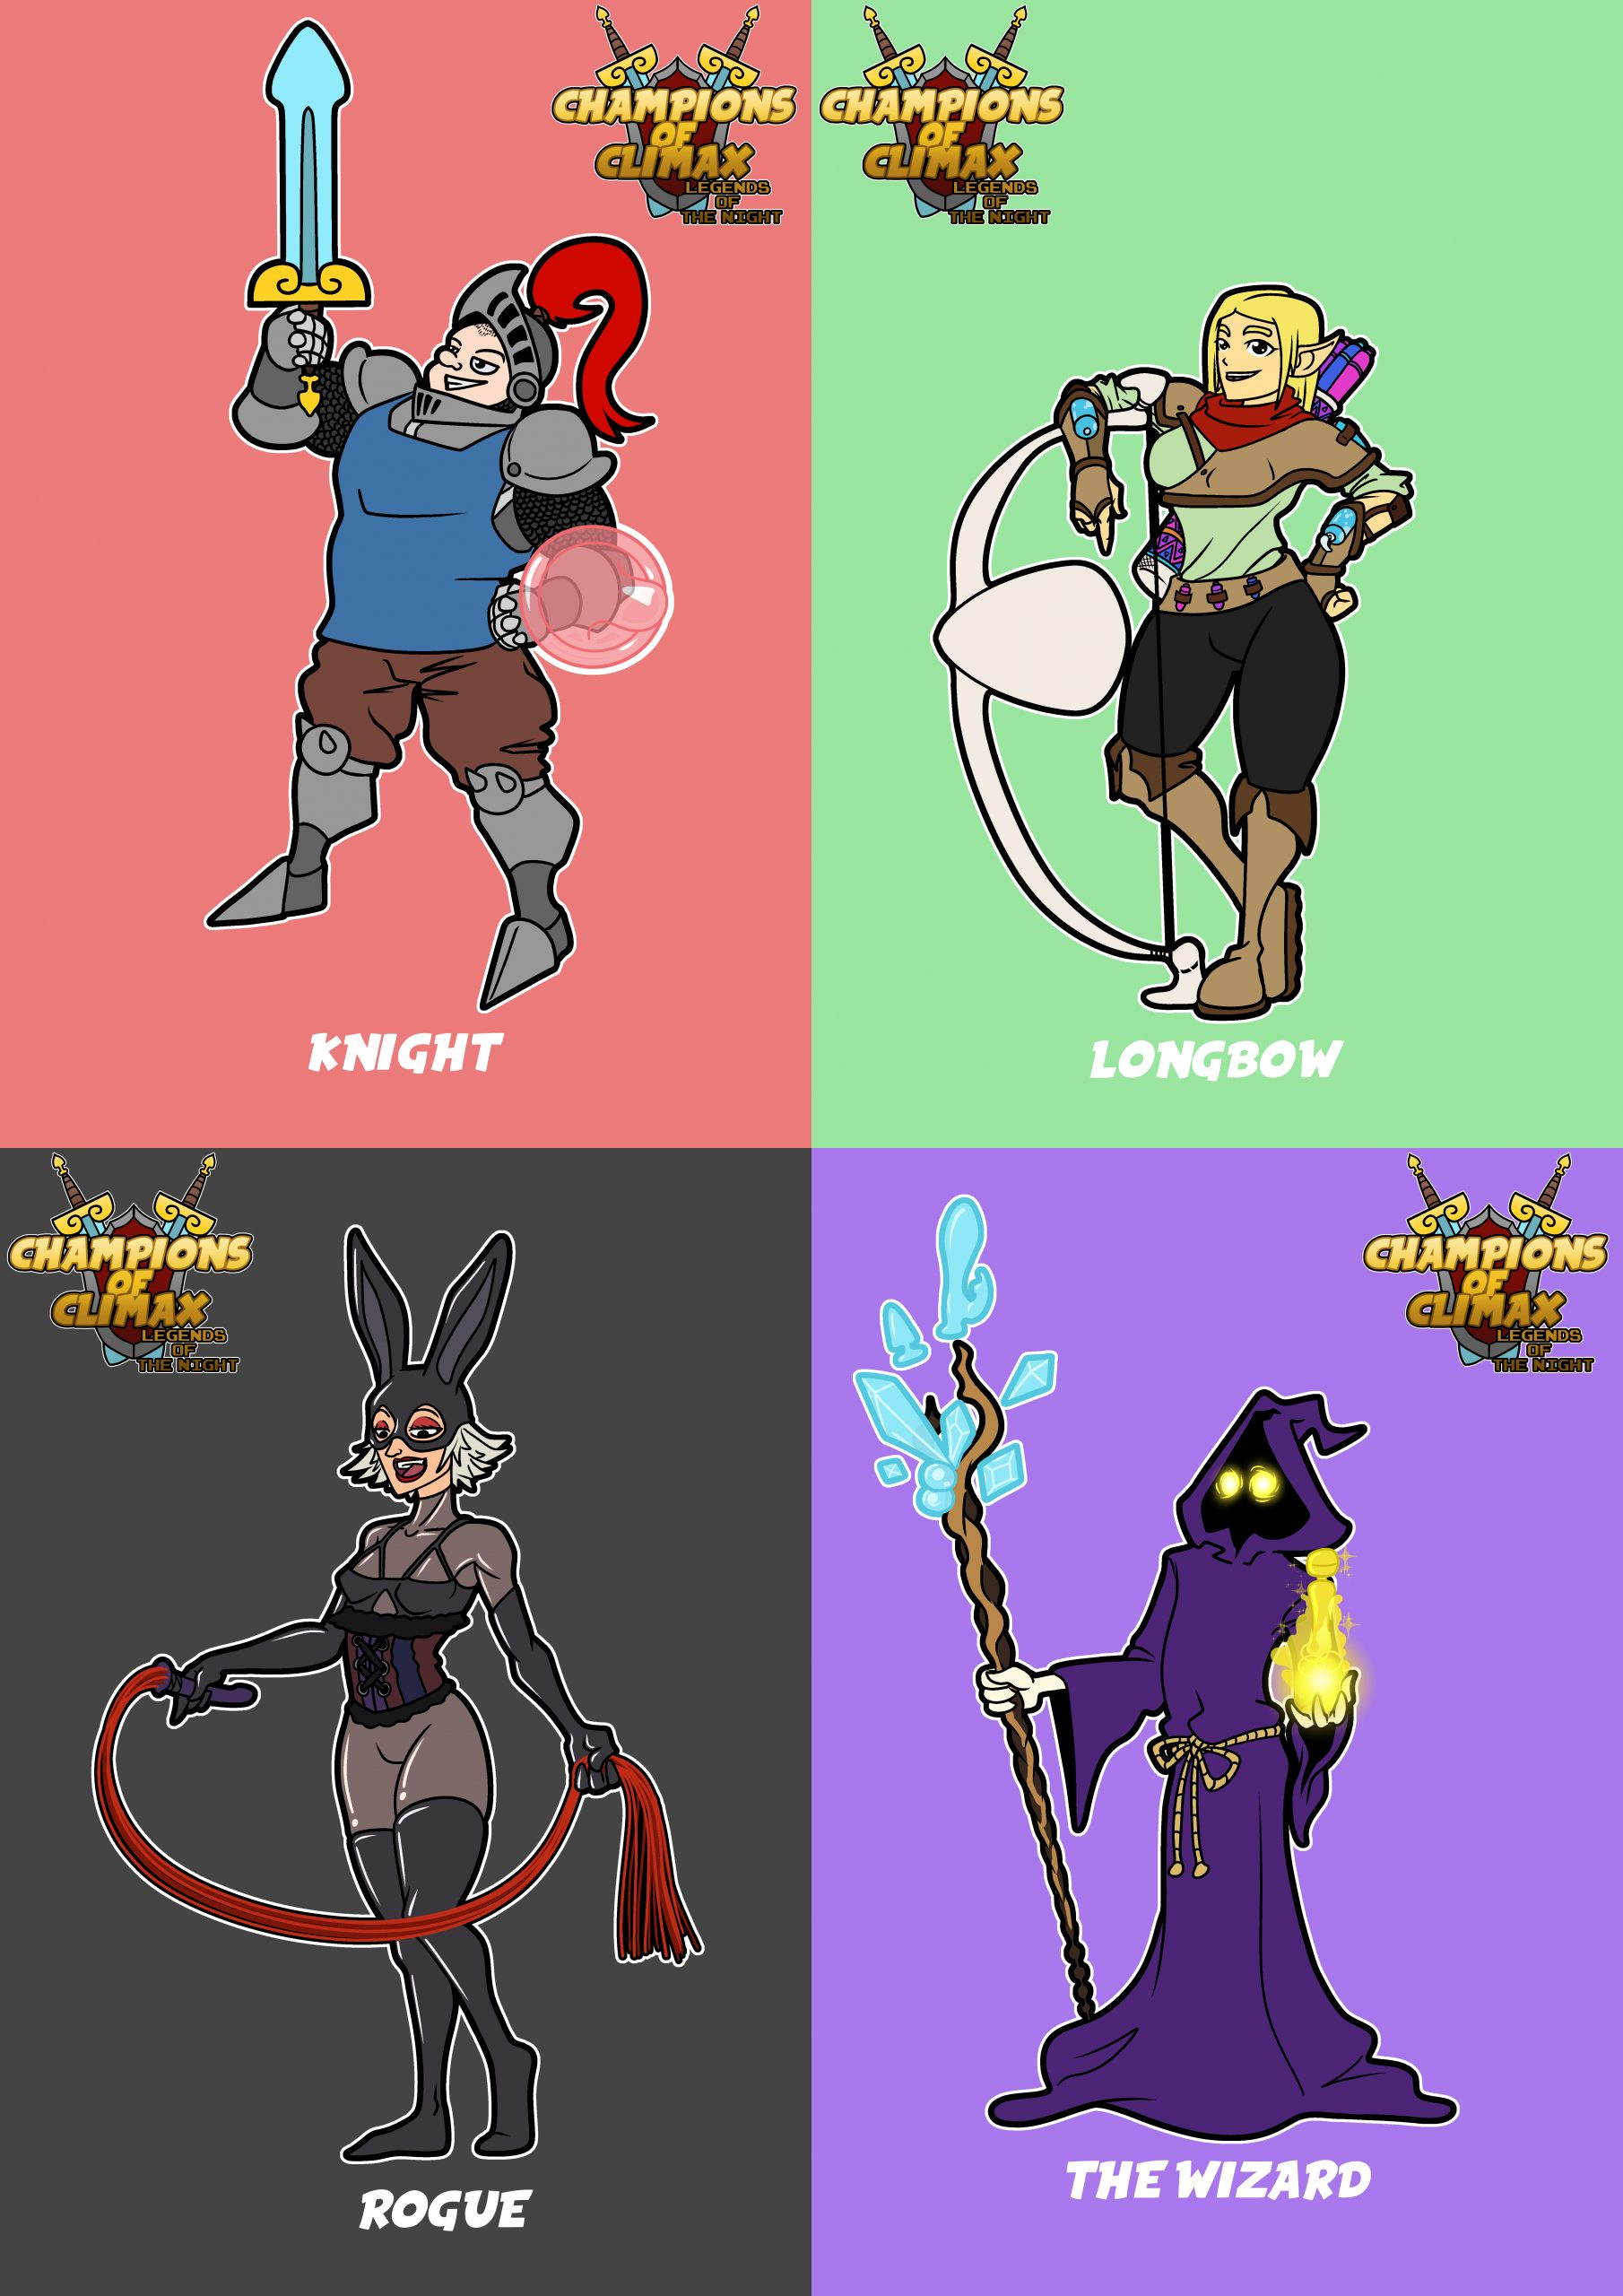 Champions of Climax - Characters Image